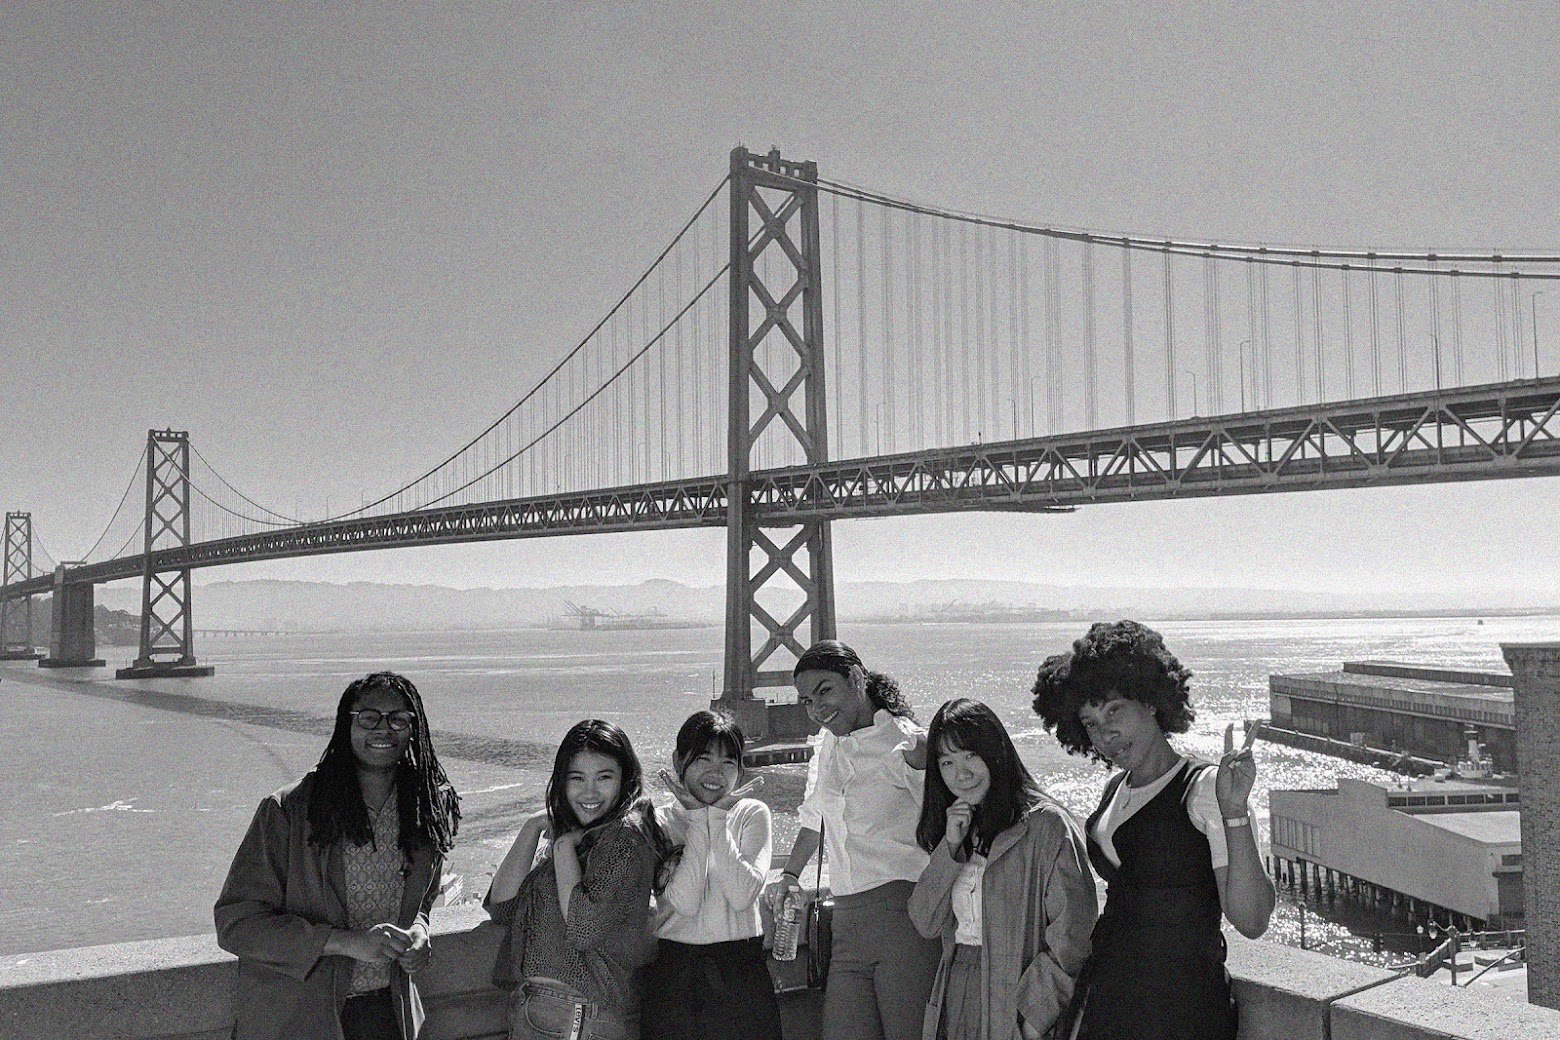 Group of Women in front of the Golden Gate Bridge